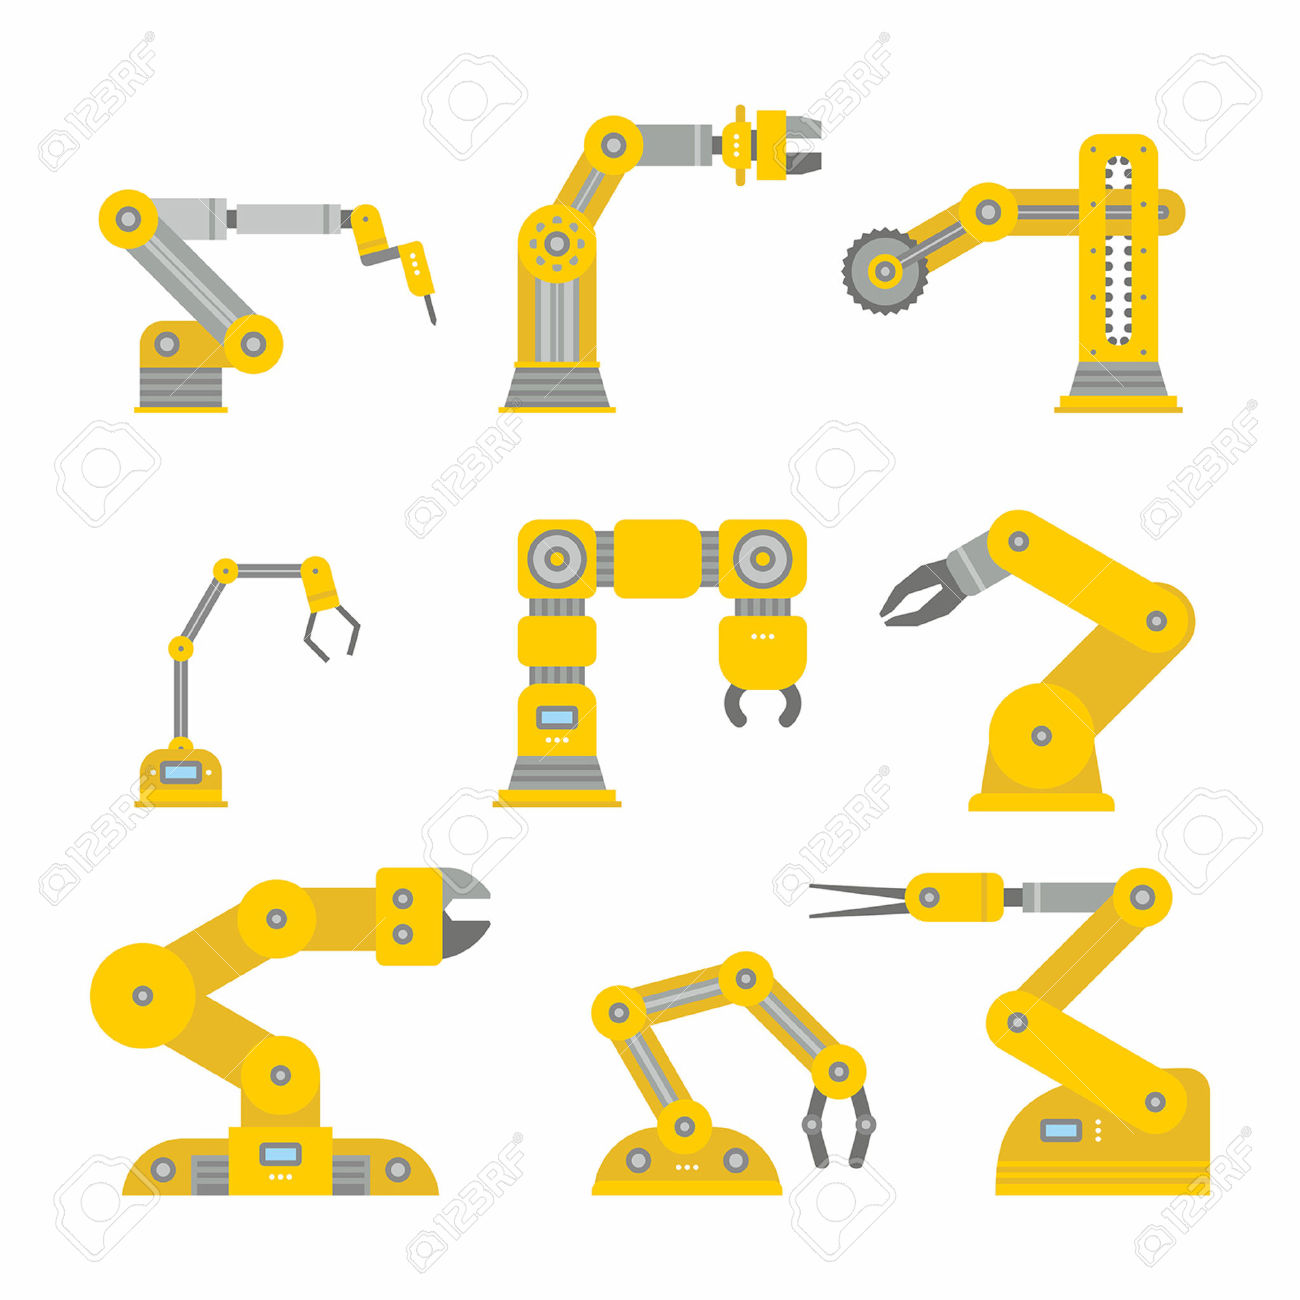 5,512 Industrial Robot Stock Vector Illustration And Royalty Free.